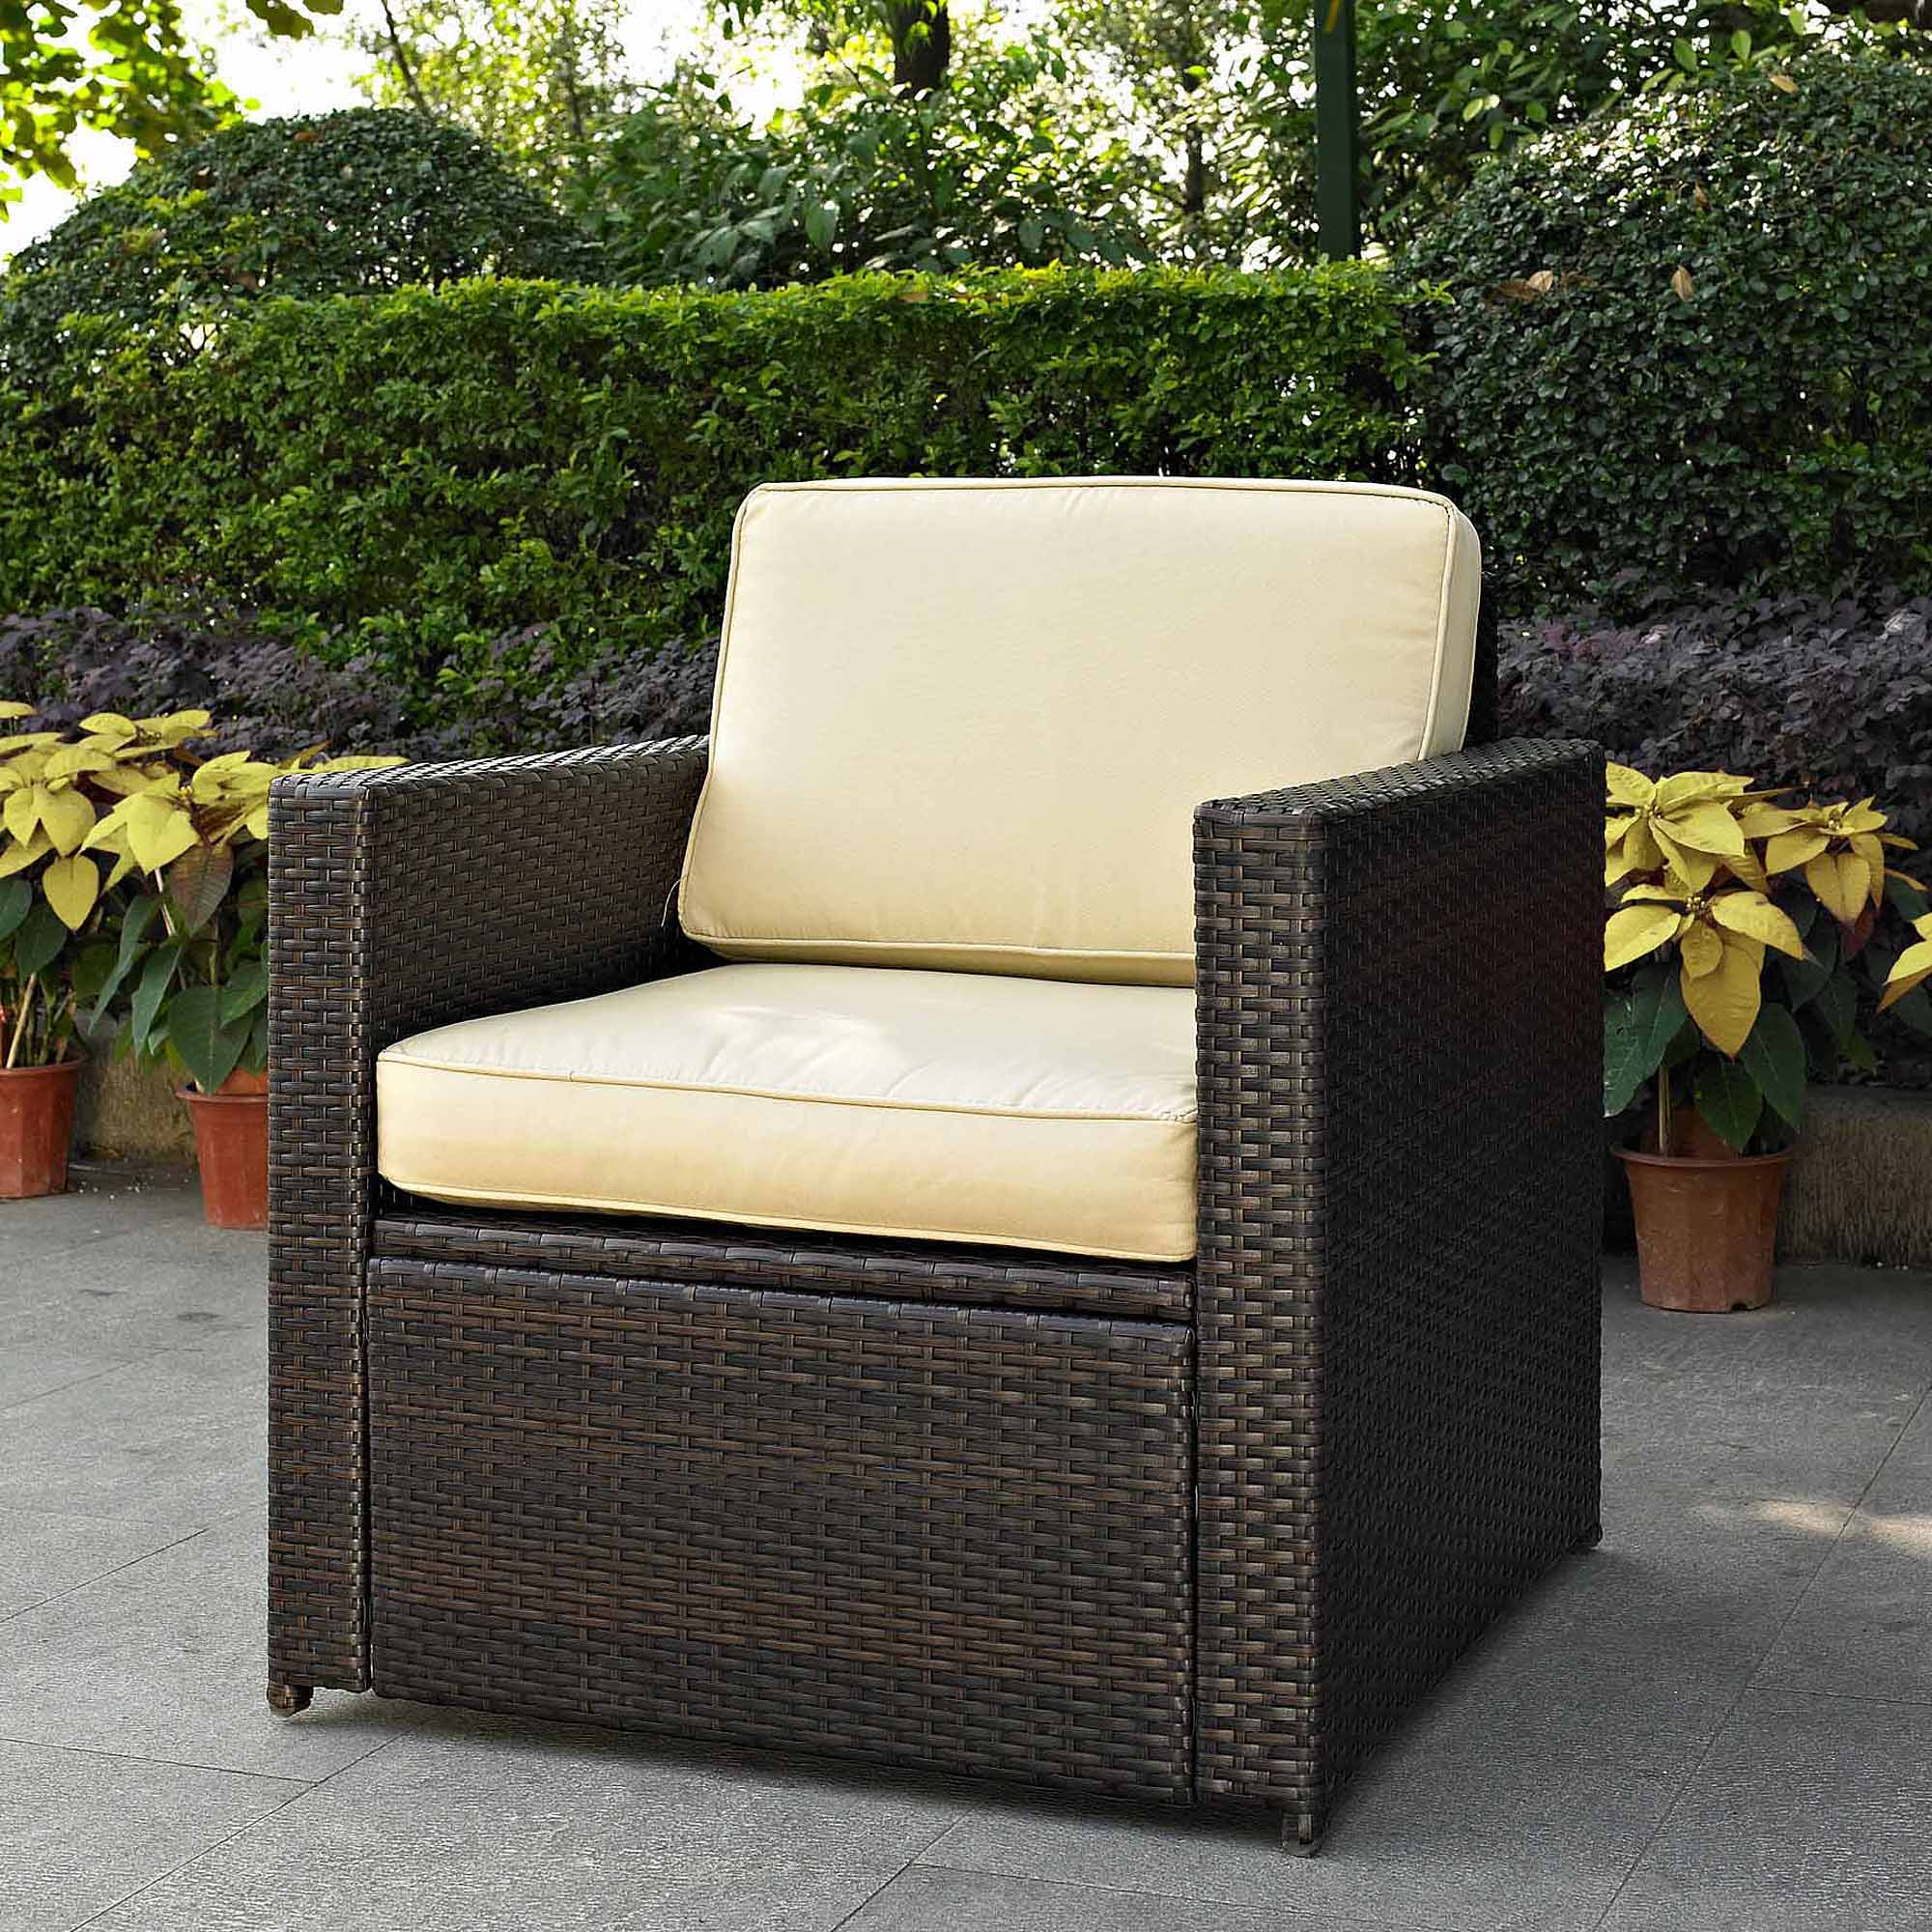 outdoor wicker chairs crosley furniture palm harbor outdoor wicker stackable chairs, 4pk -  walmart.com DEJBQQB